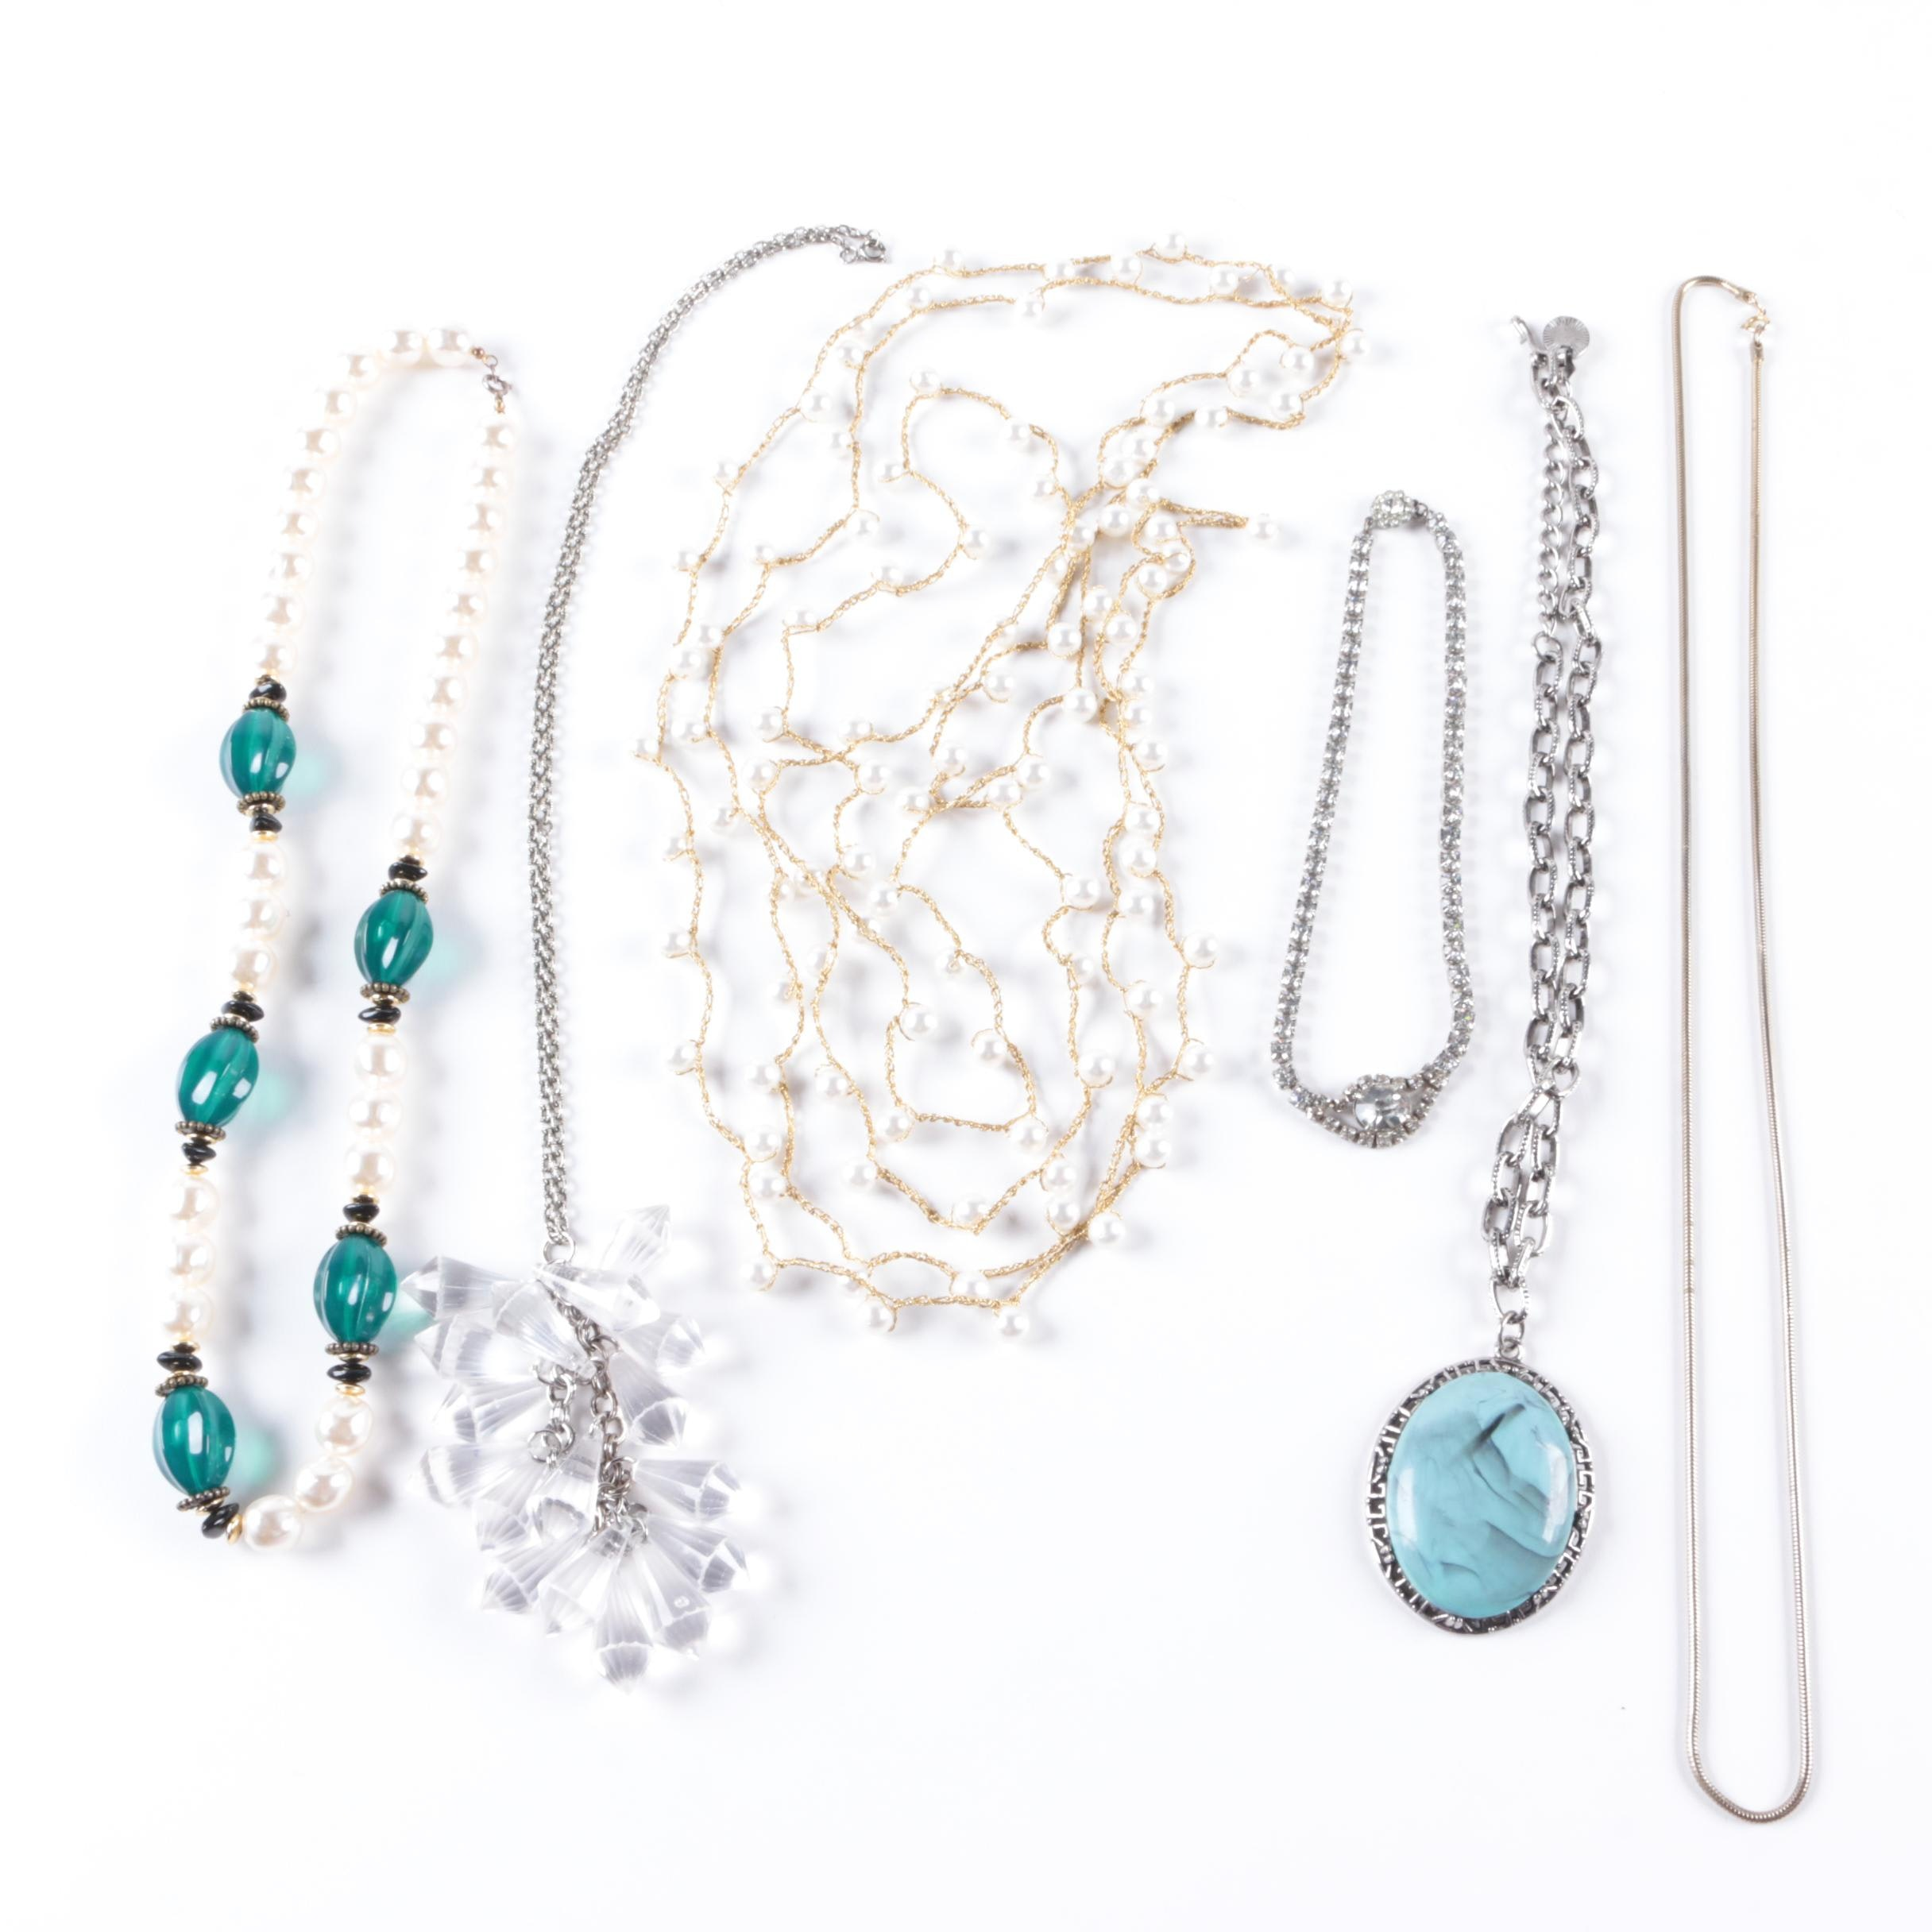 Selection of Costume Necklaces Including Rhinestones